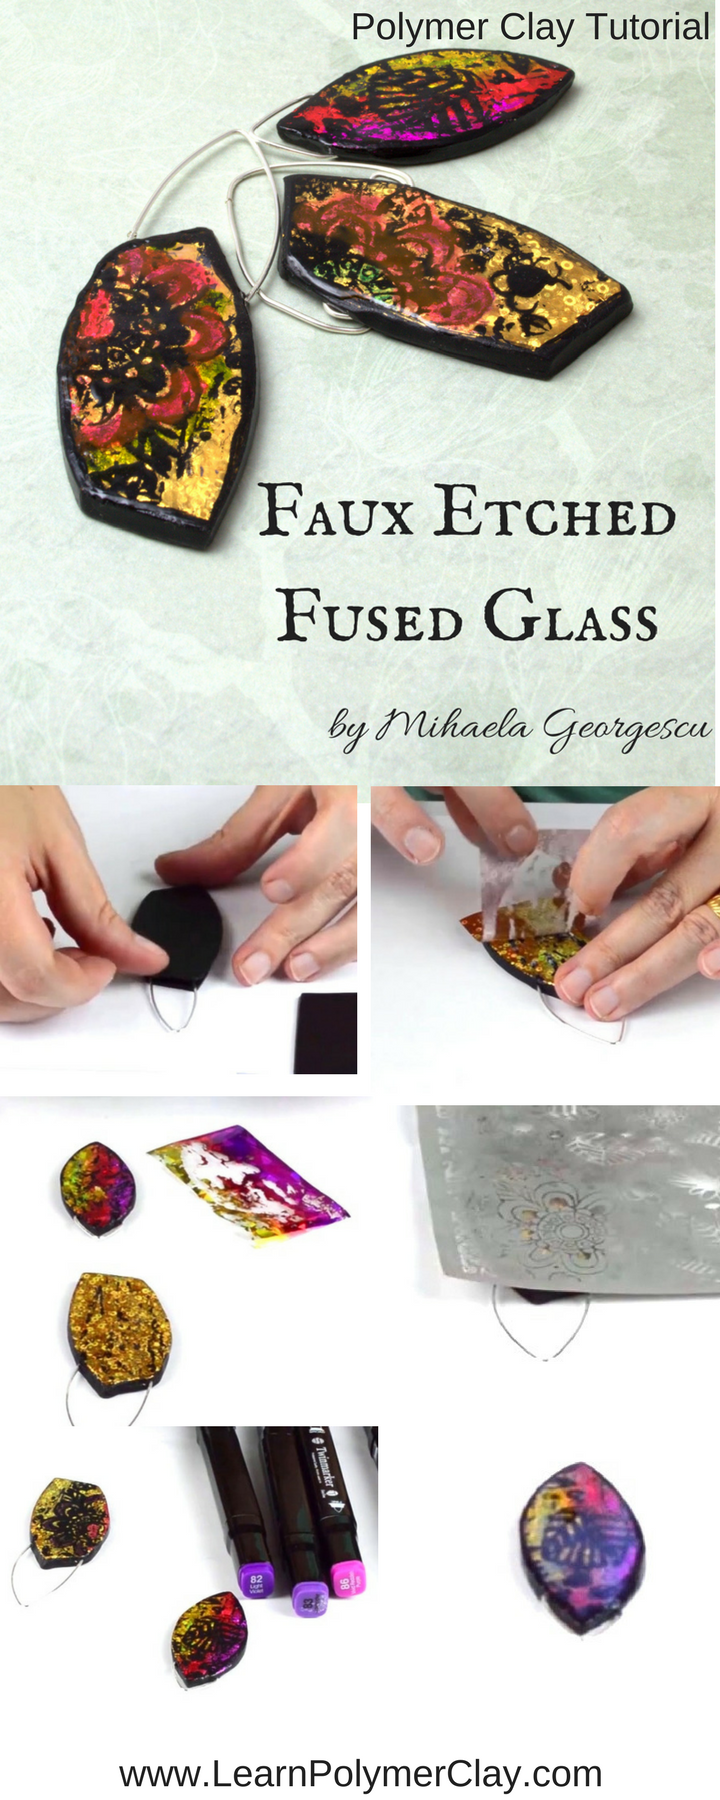 Faux Etched Glass Polymer Clay Tutorial